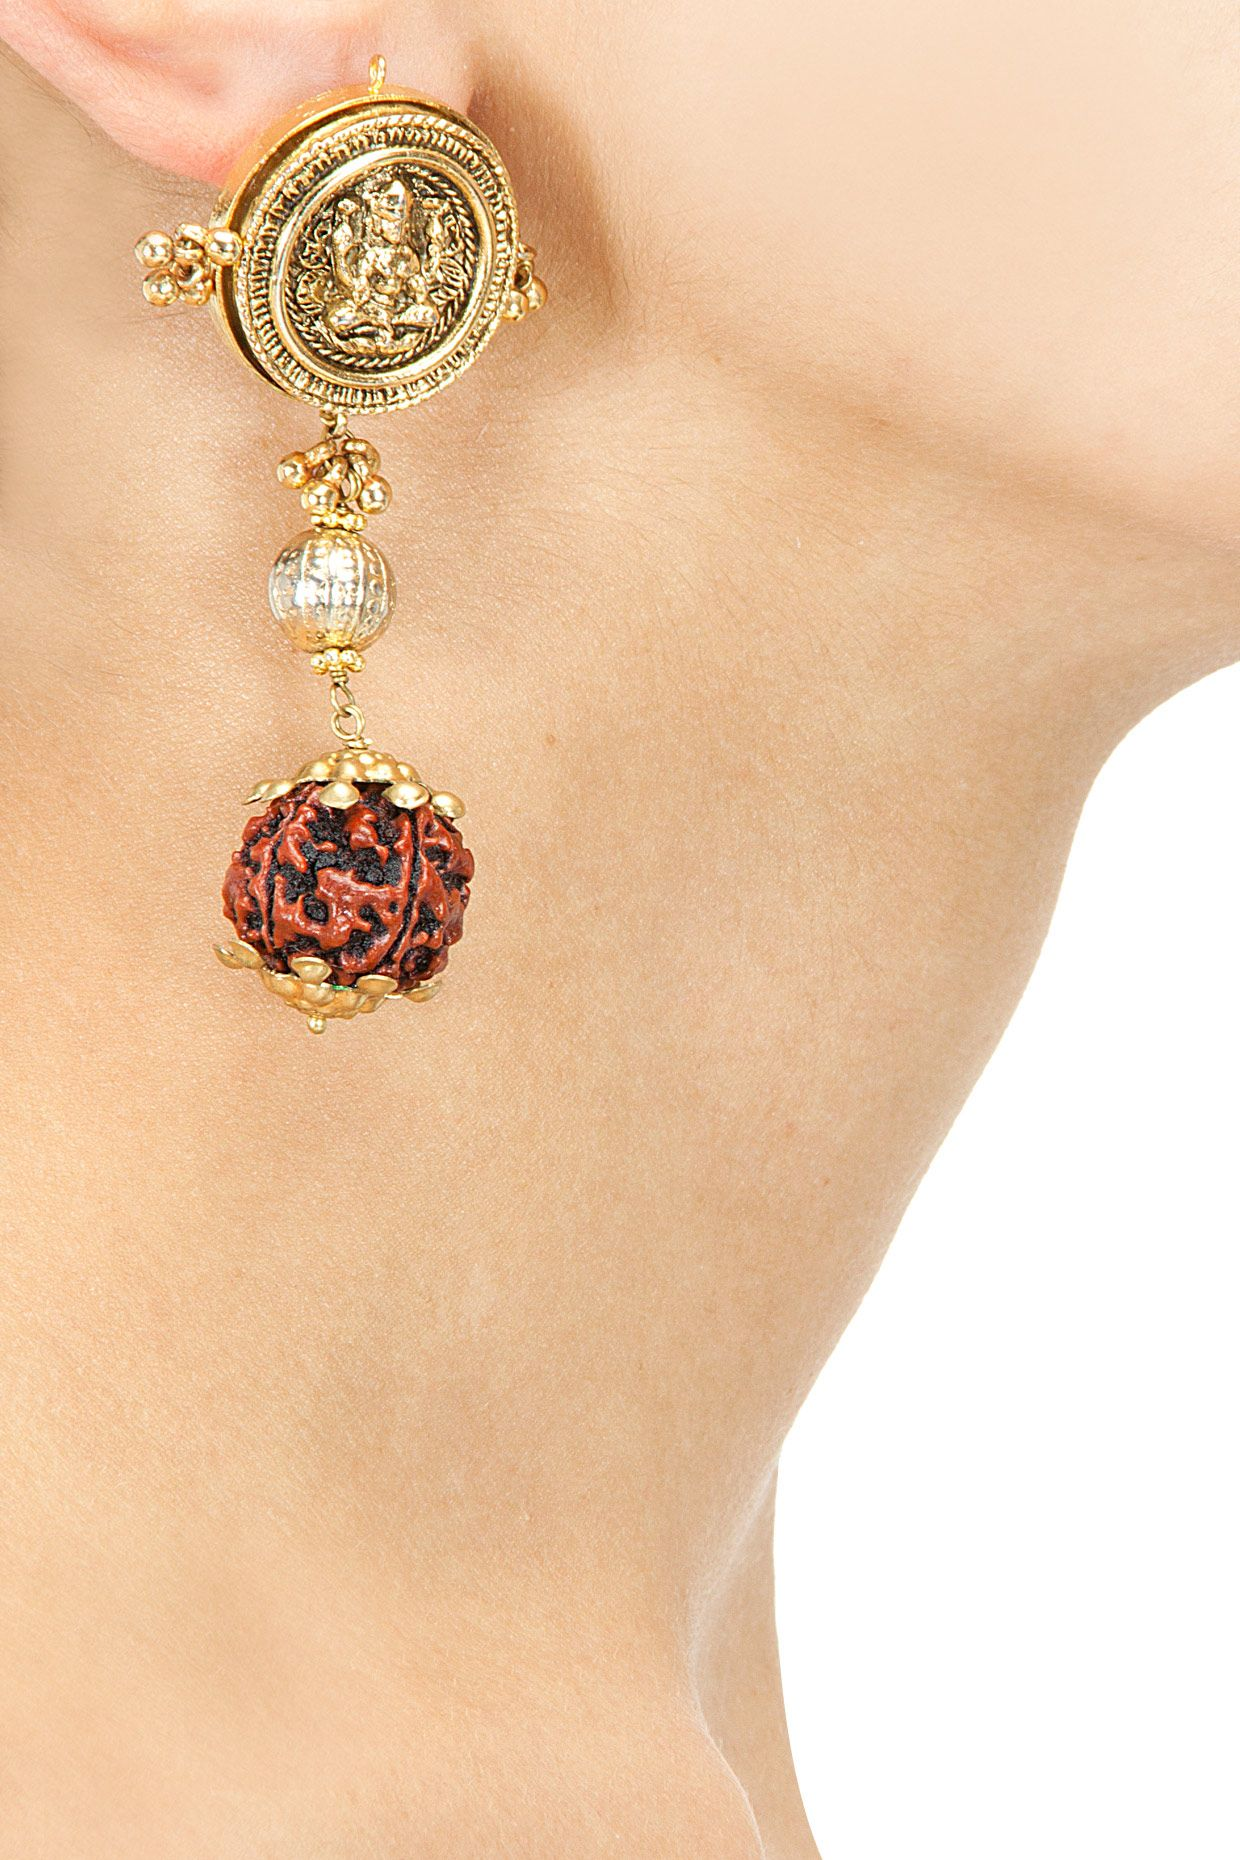 Goddess lakshmi earrings with rudraksh hanging available only at